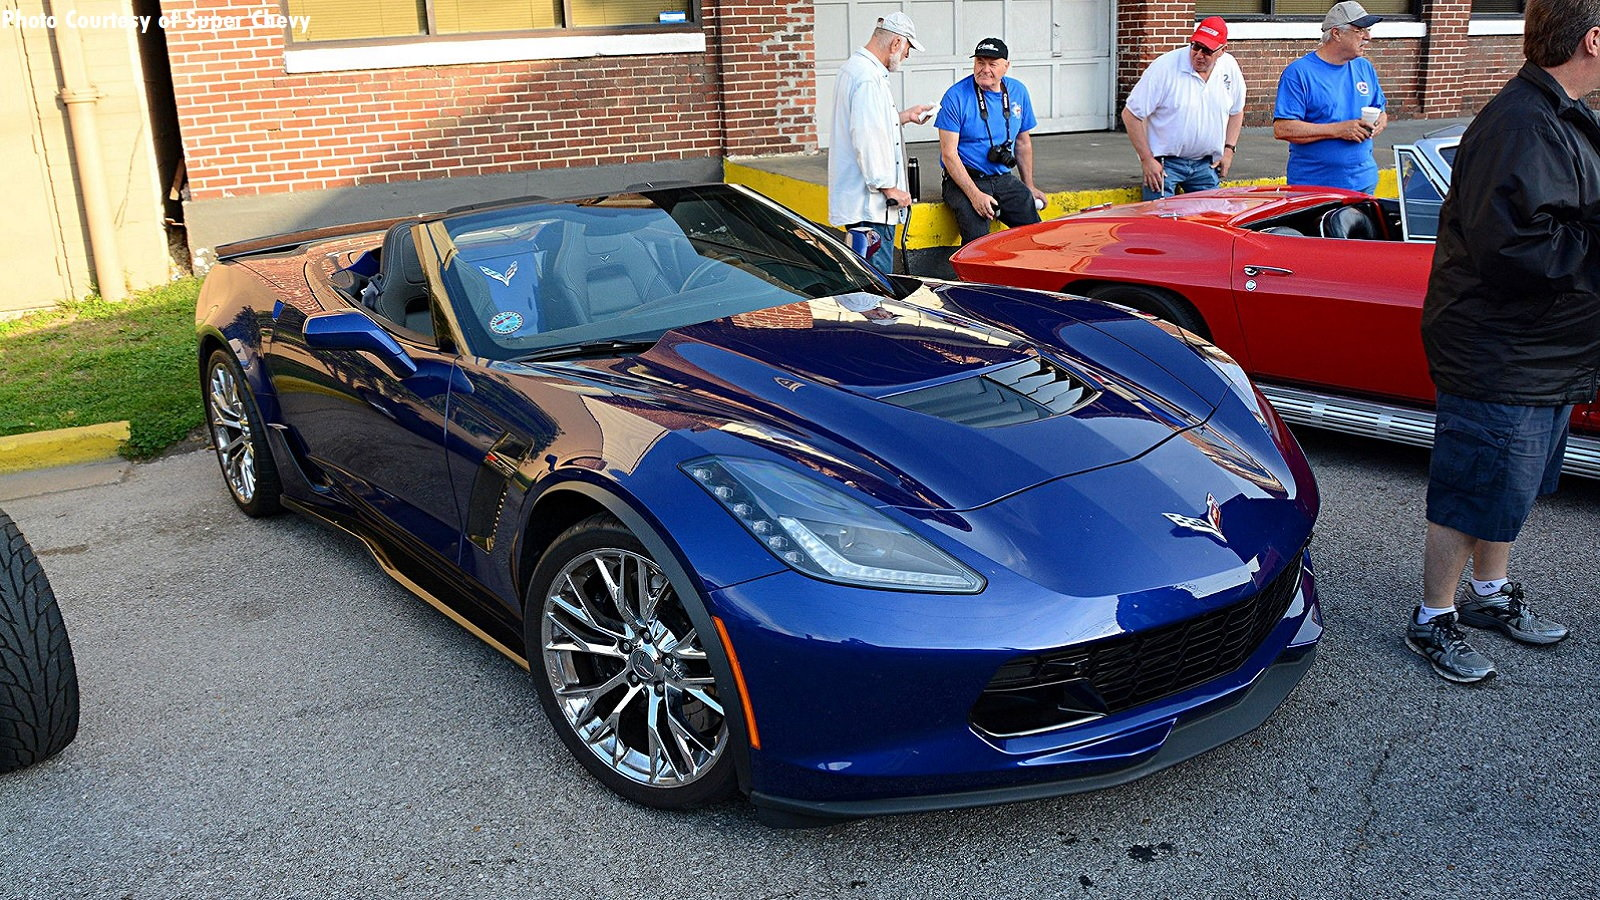 Corvettes at the 2018 Chattanooga Coker Tire Cruise-In